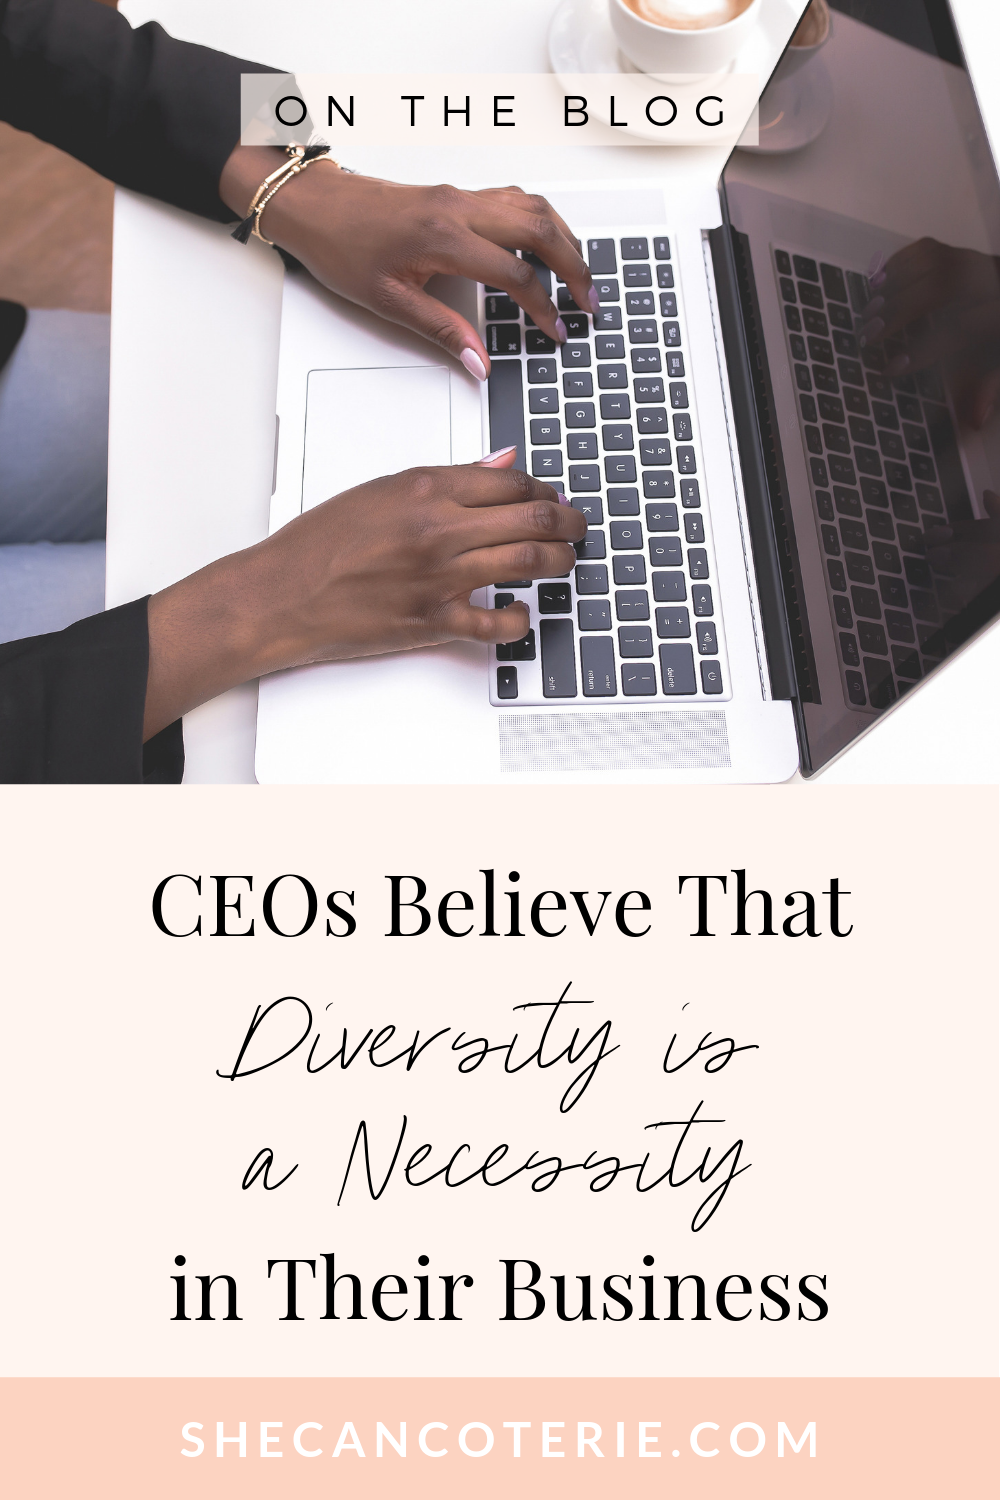 CEOs Believe that Diversity is a Necessity in Their Business | SheCanCoterie.com